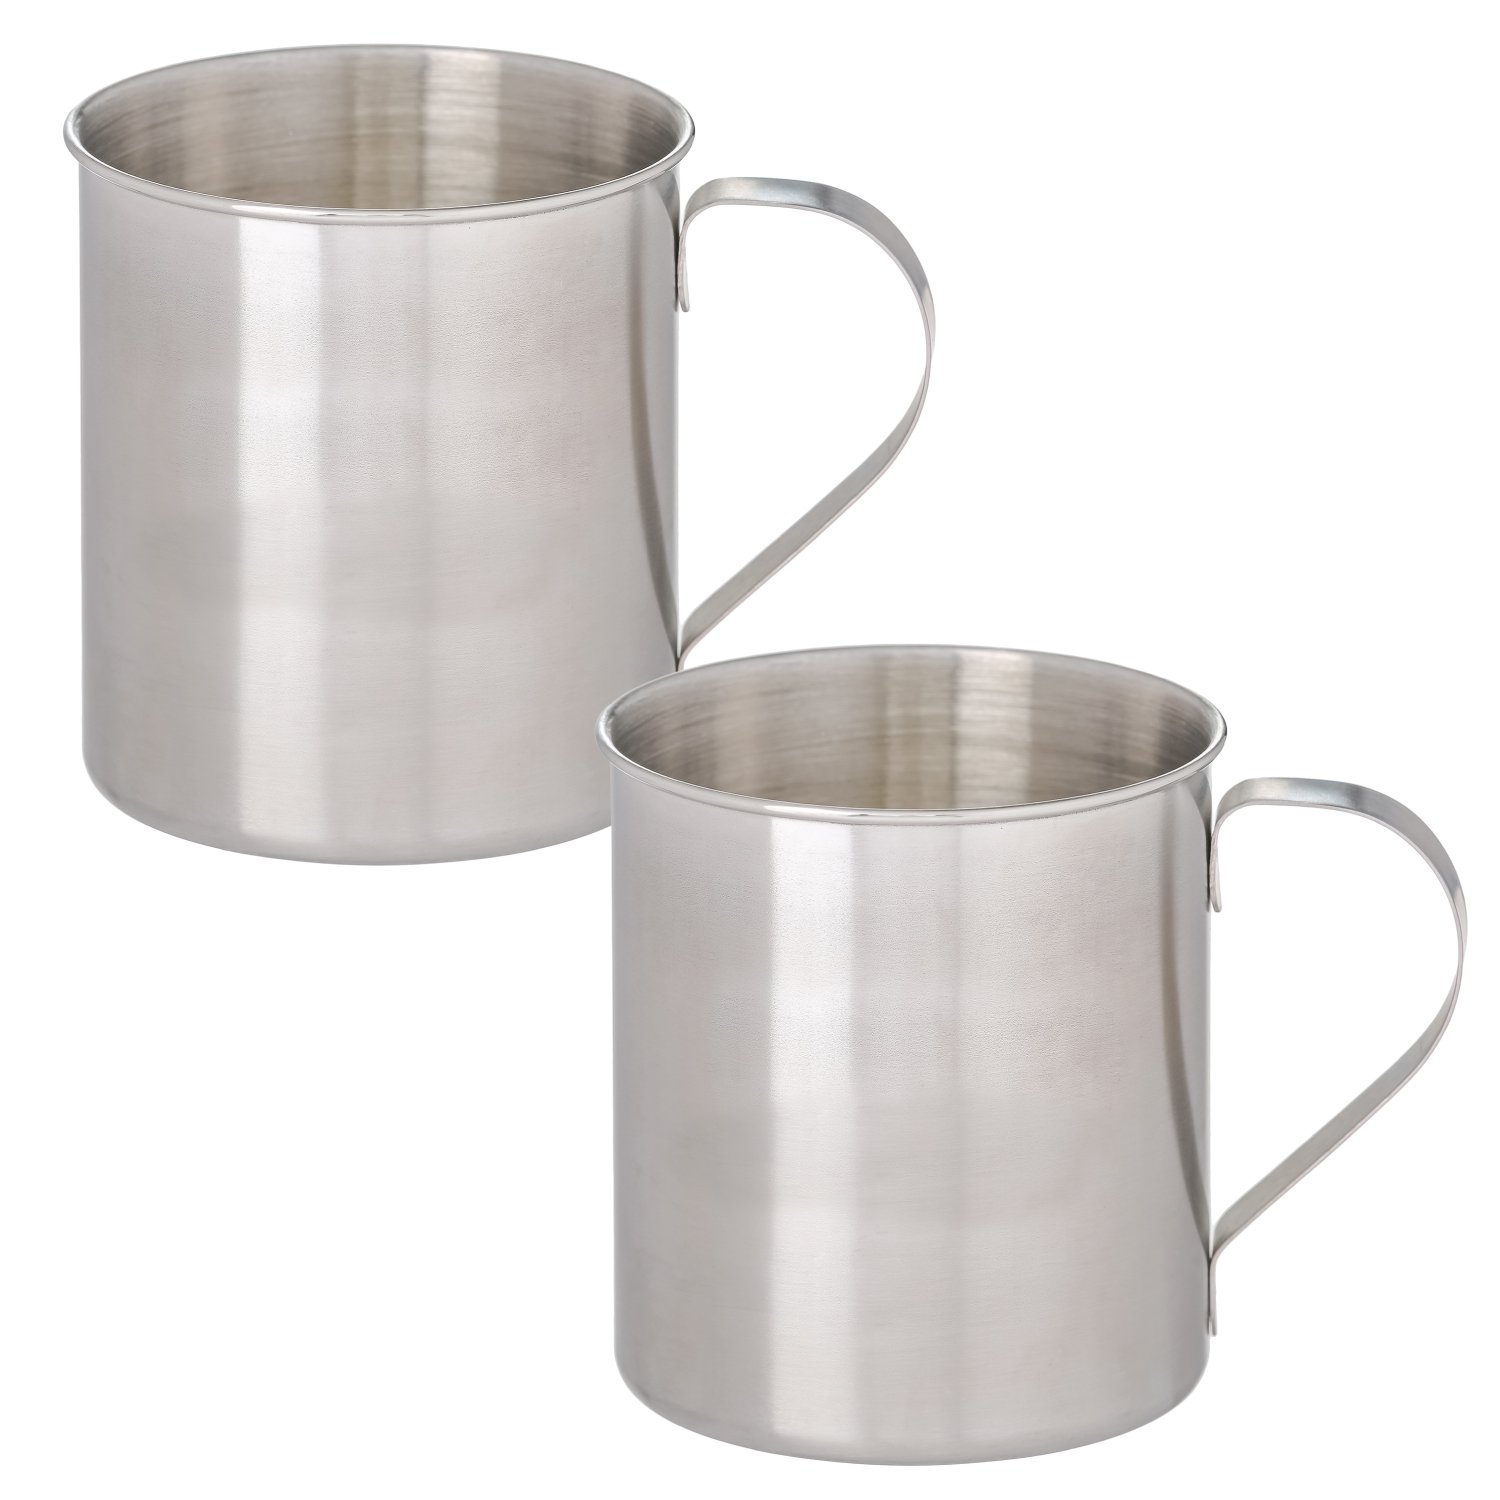 Thirsty Rhino Seles, Mini Stainless Steel Moscow Mule Mug, Brushed Silver Finish, 8 oz (Set of 2)